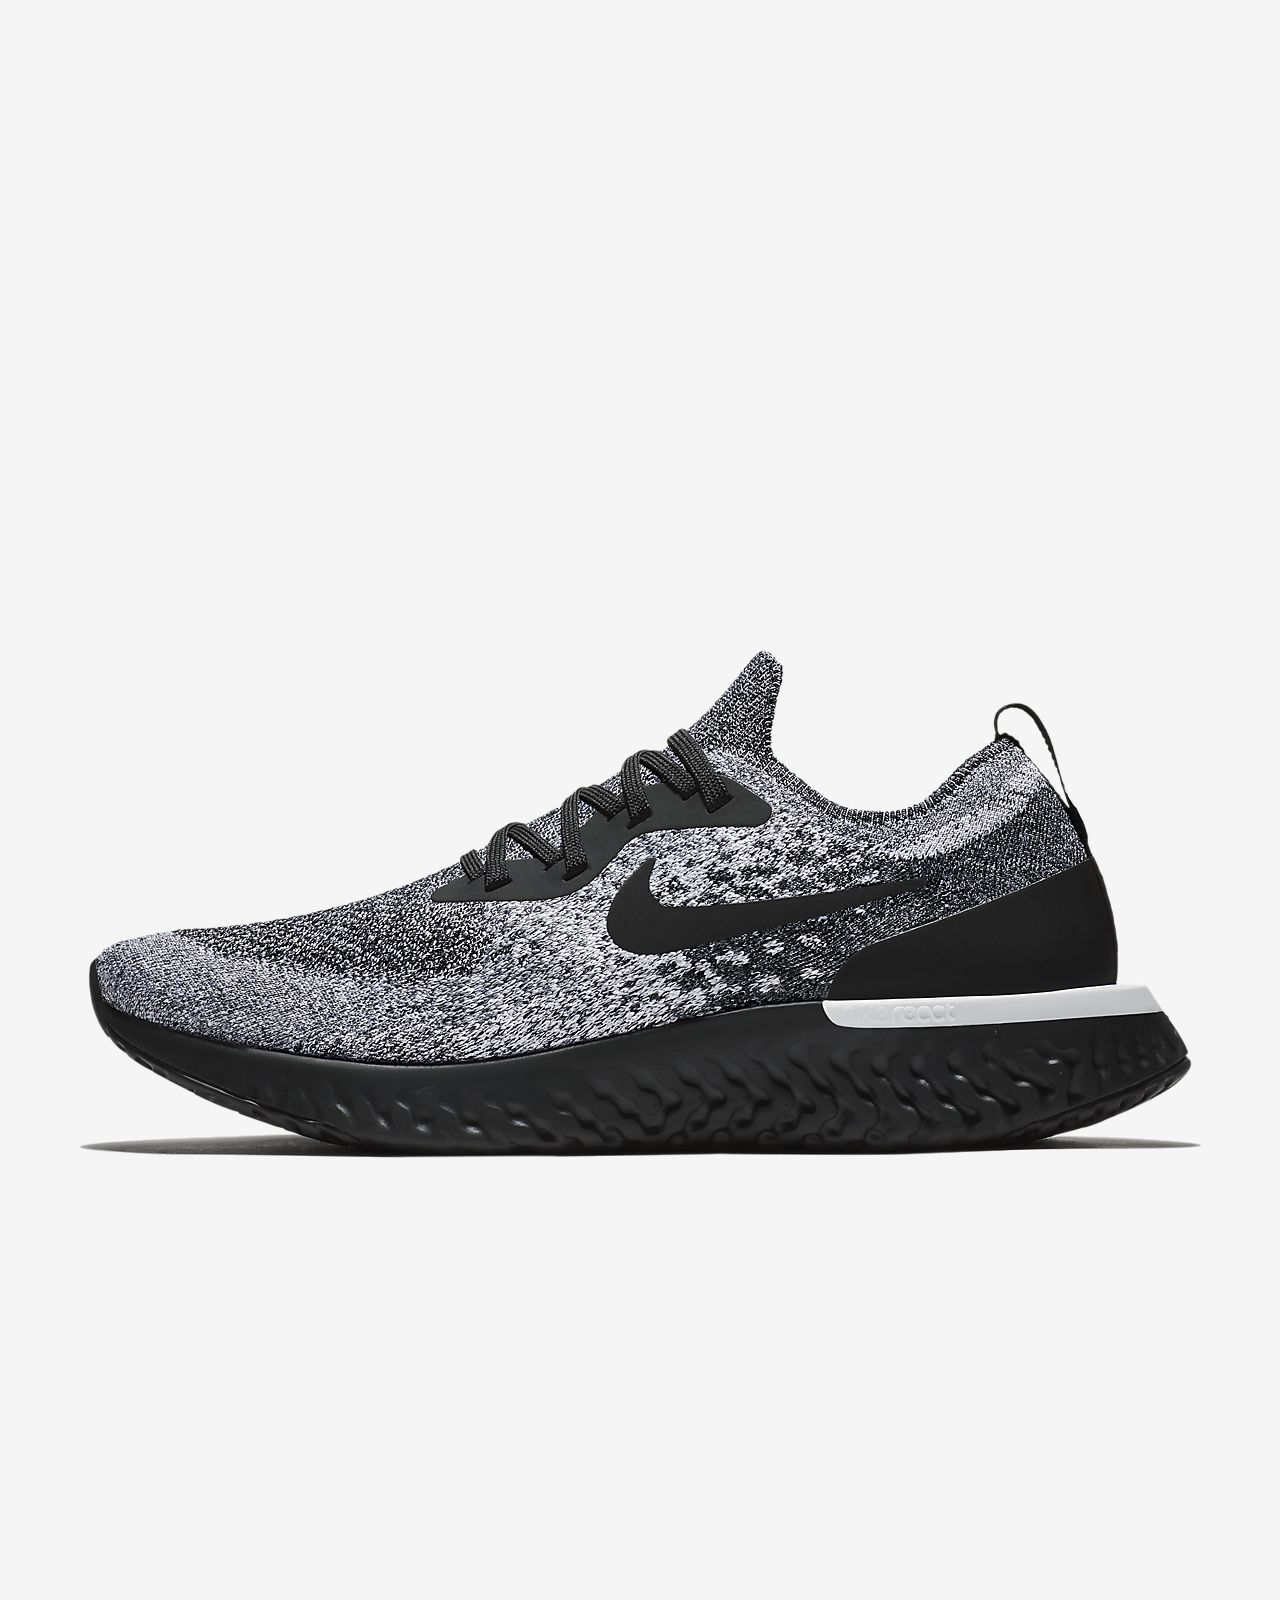 6517066a1a2c Nike Epic React Flyknit Men s Running Shoe. Nike.com ID